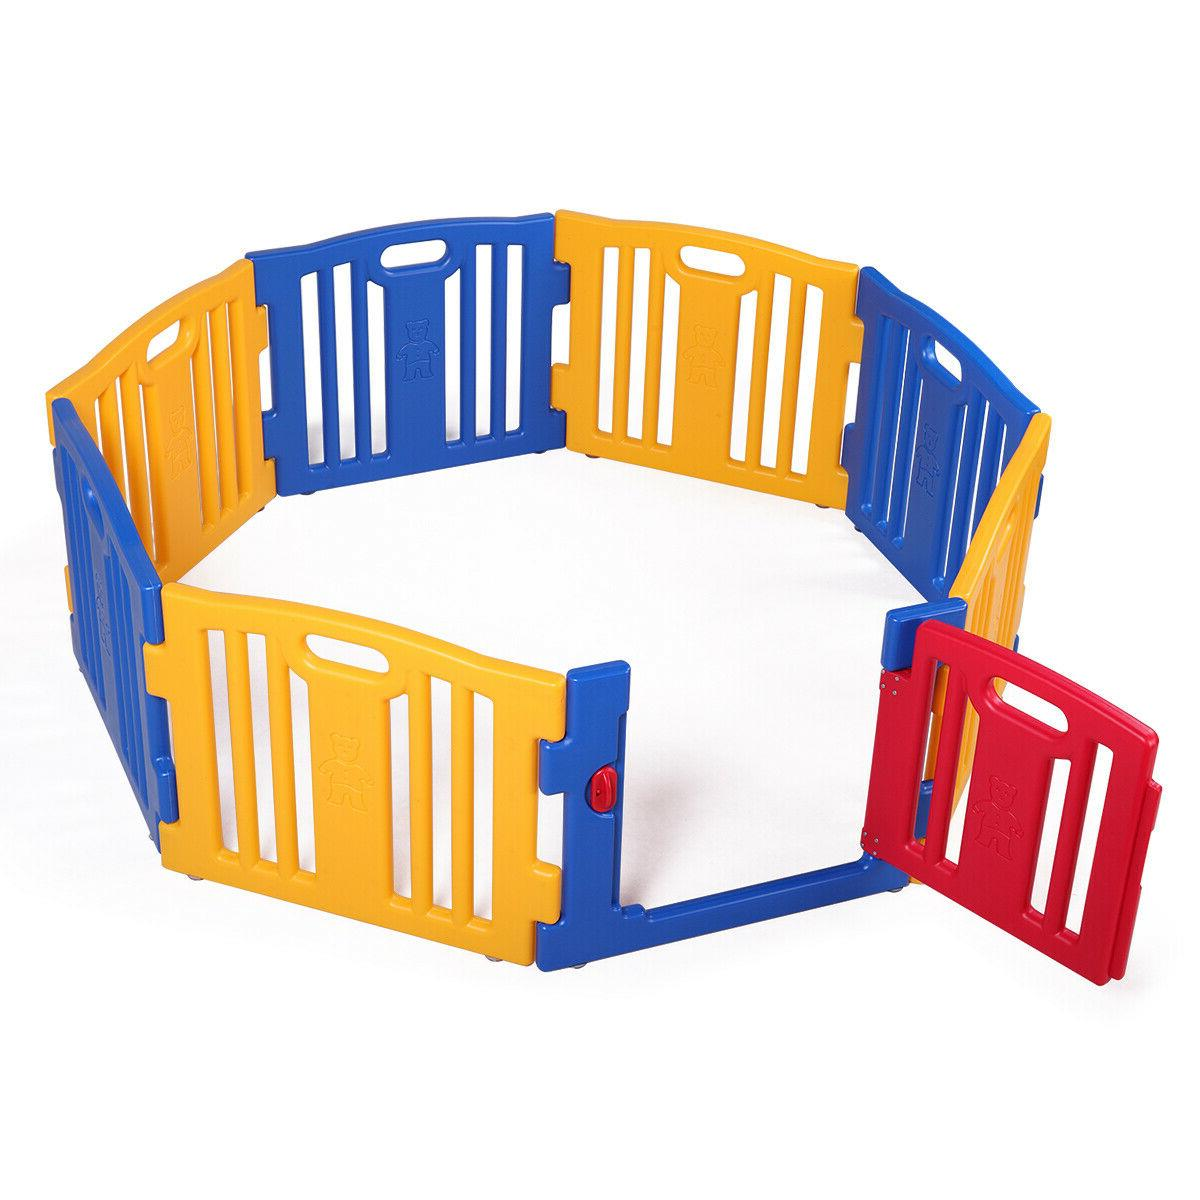 8 Play Yards Kids Playpen Activity Center Home